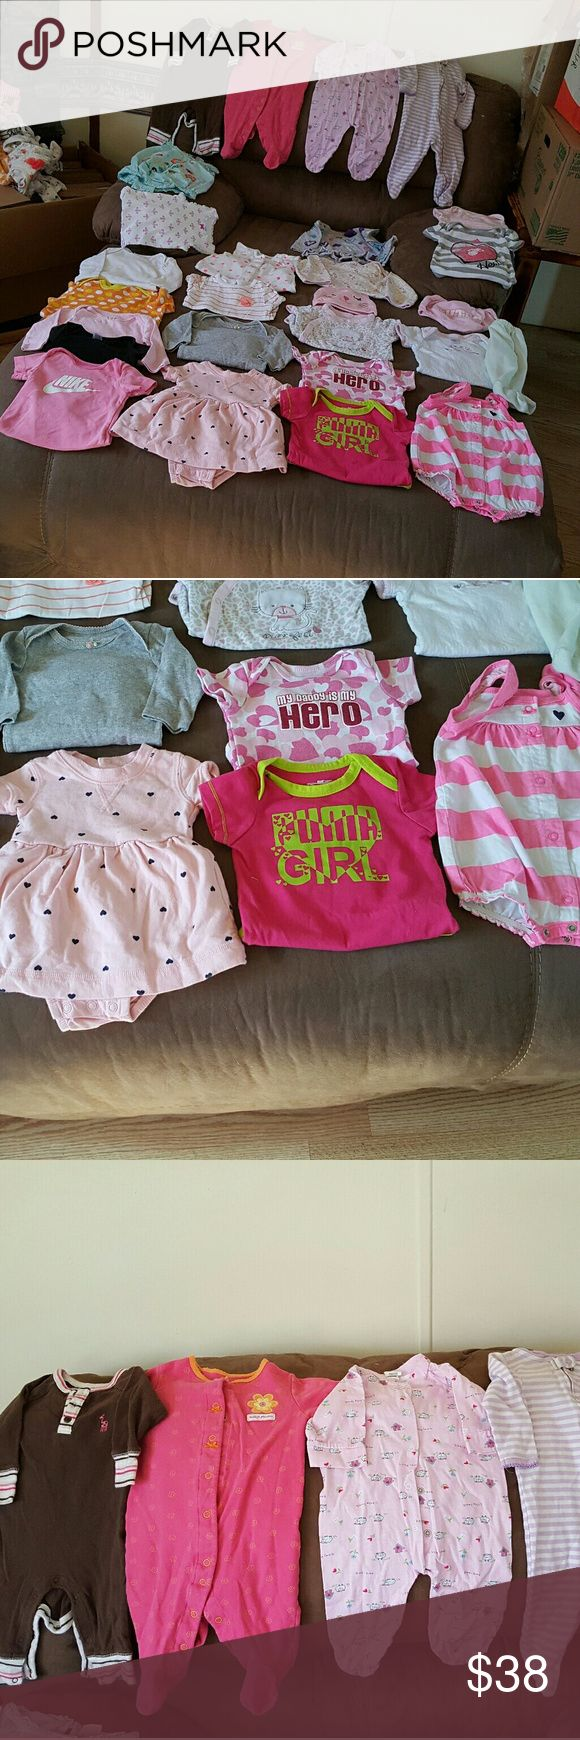 Baby girl lot 0-6 months  45 piece lot This lot has nike, puma, Adidas,  has a varsity jacket and a pair of pink and white nike crib shoes in it. Not to mention some really cute dress outfits, receiving blankets, matching outfits, matching hats, pants, and onsies. Matching Sets